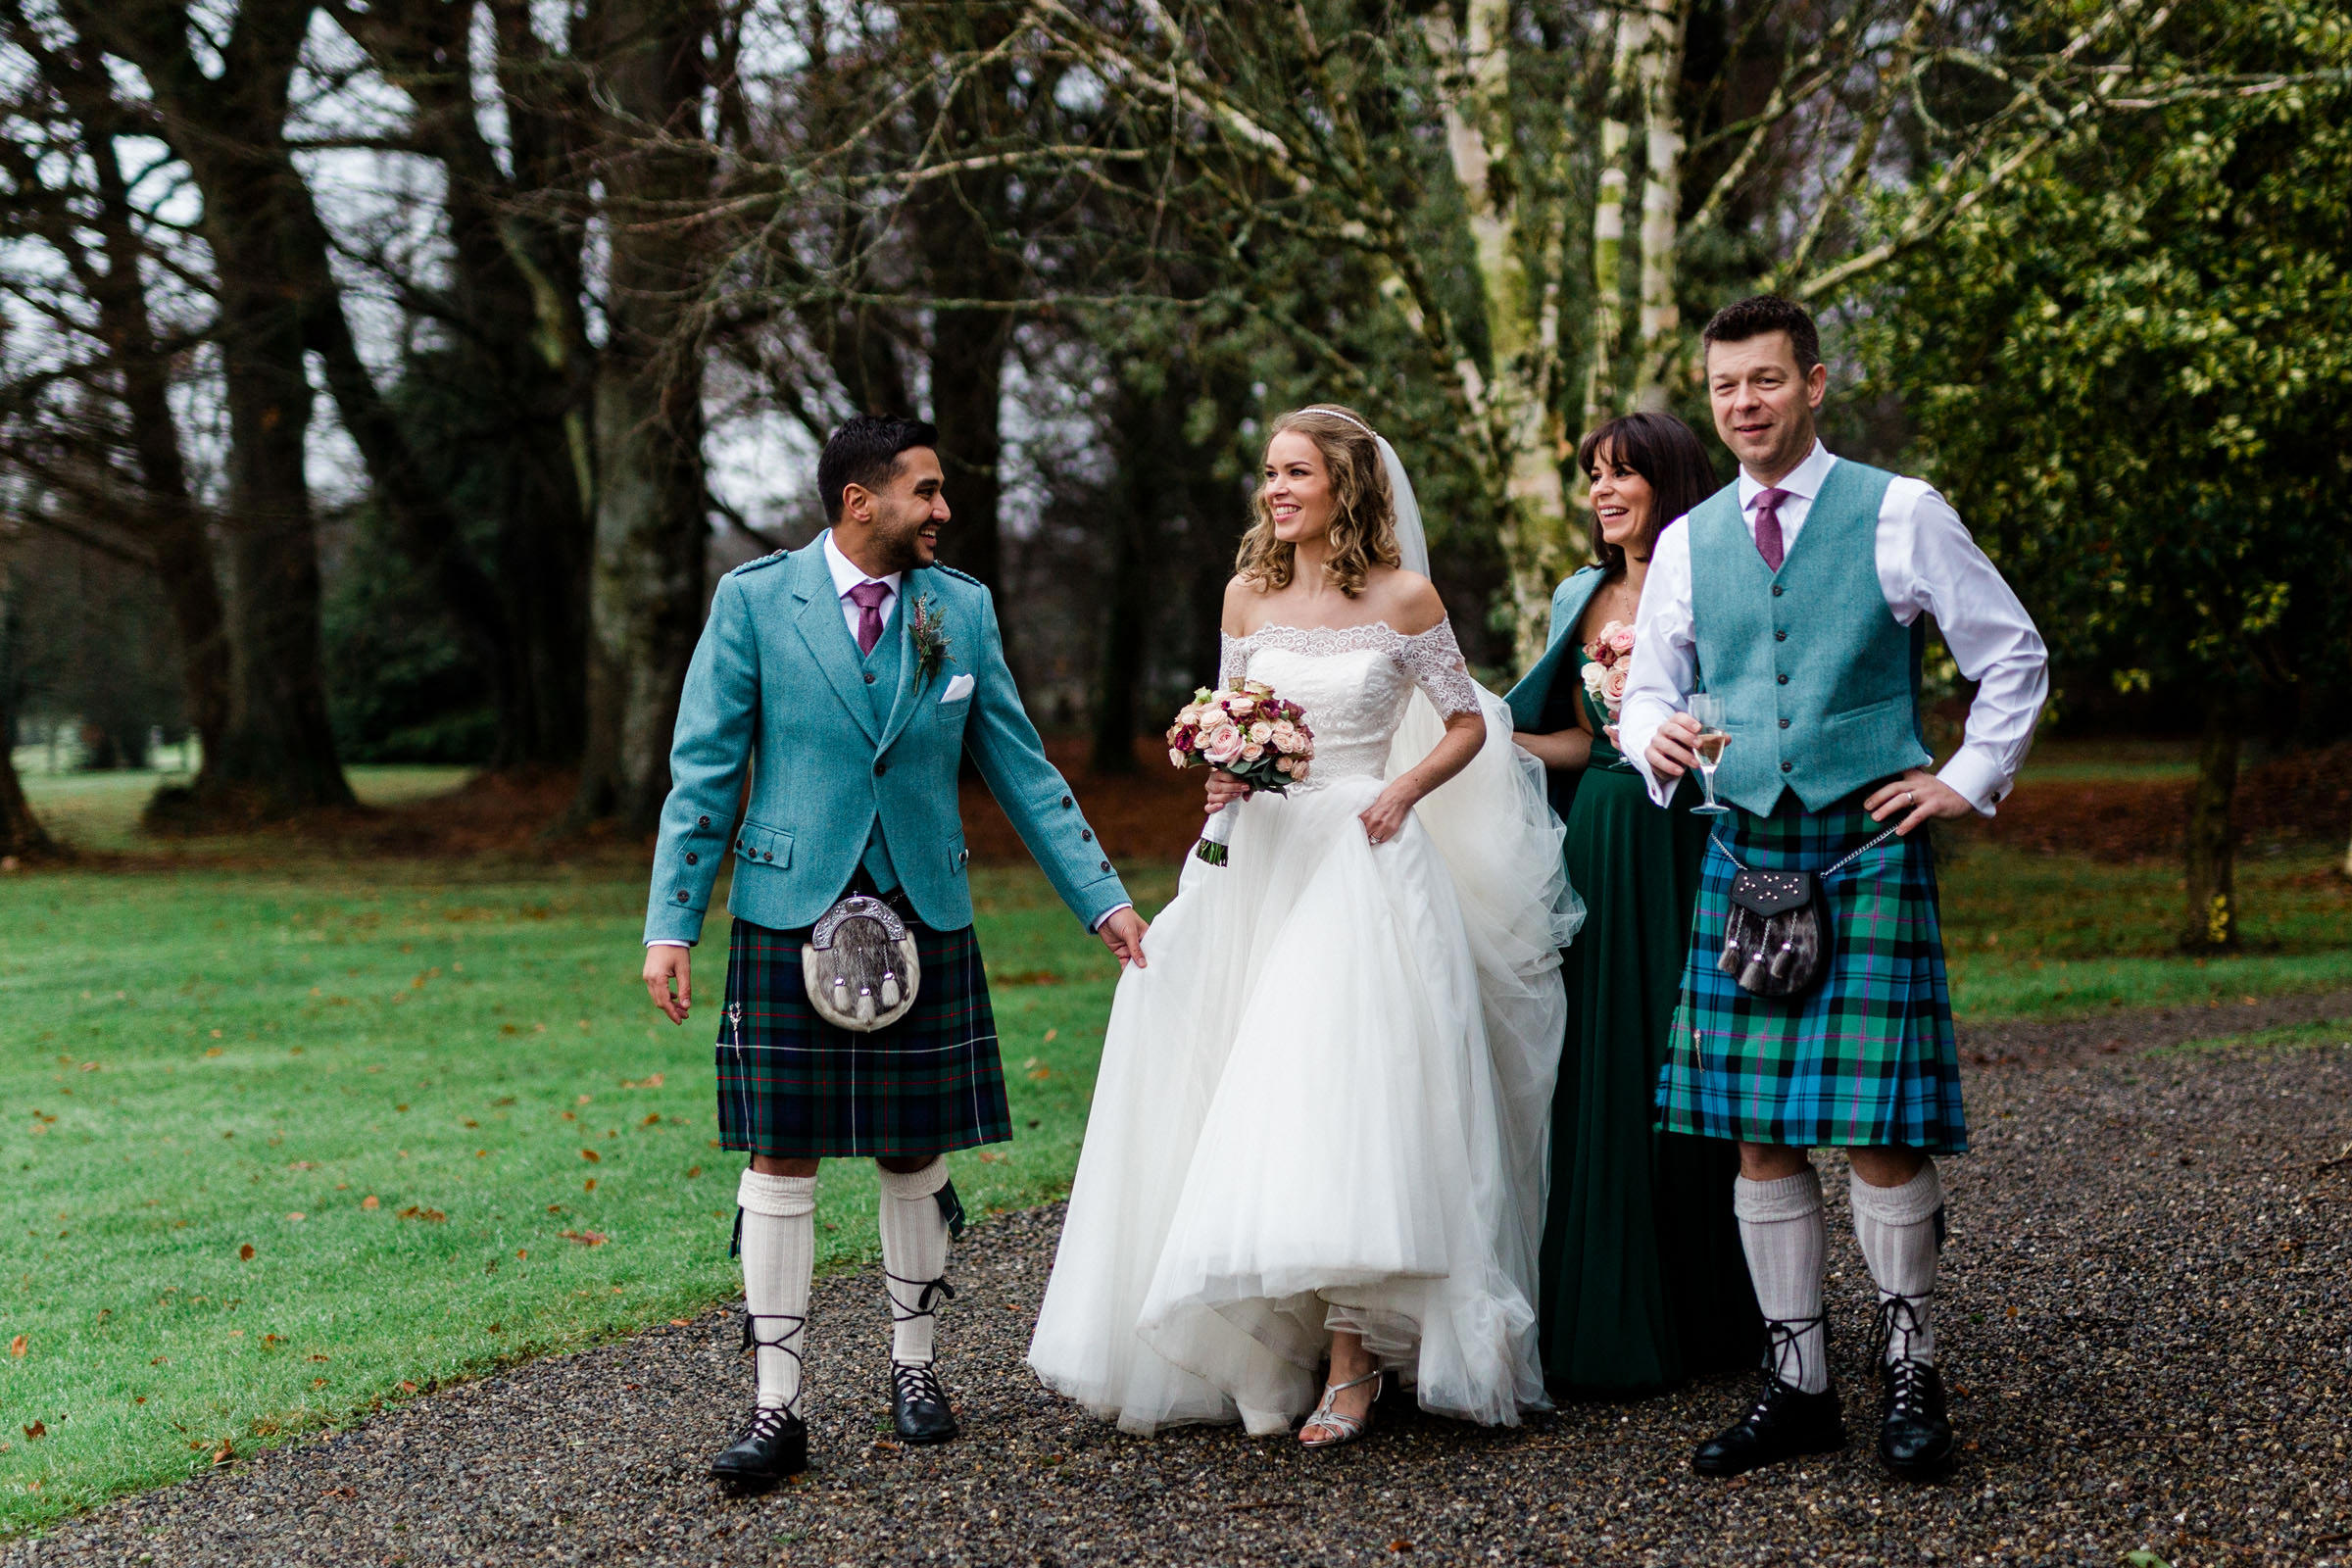 groomsmen-in-kilts-with-bride-the-portrait-rooms